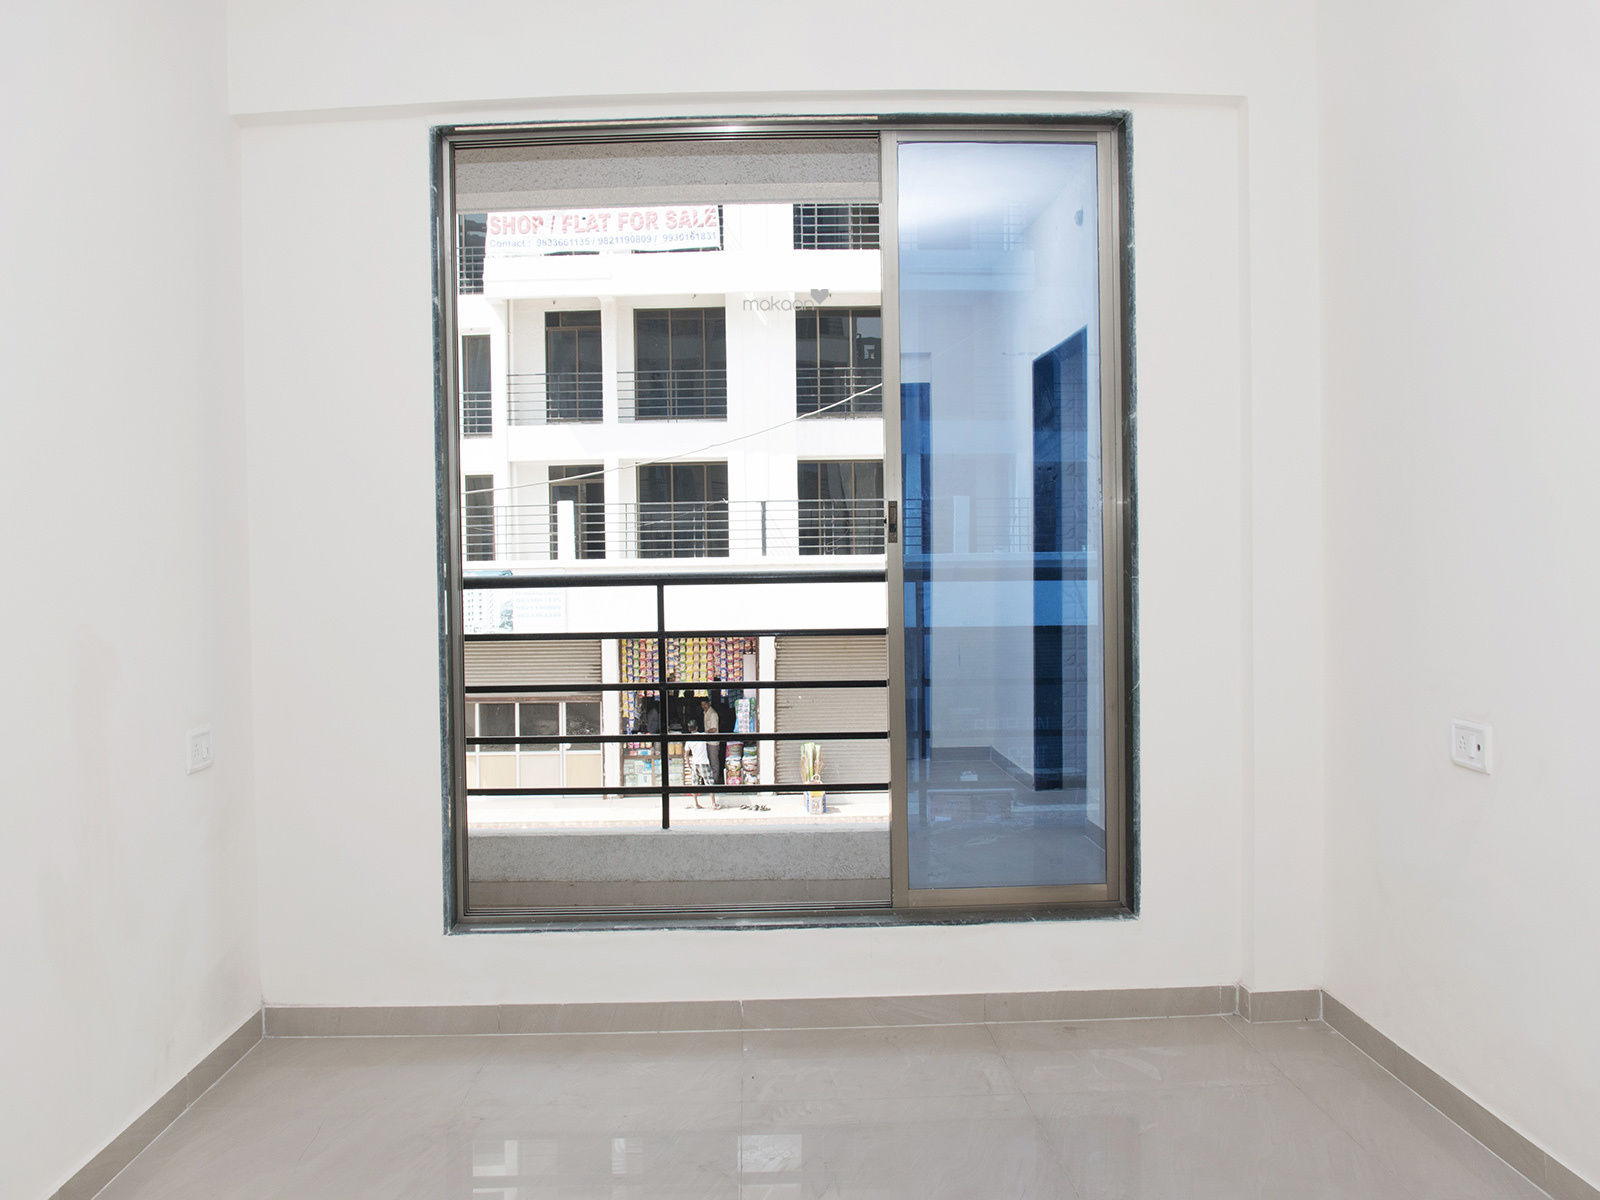 685 sq ft 1BHK 1BHK+2T (685 sq ft) Property By Proptiger In Shakti, Ulwe